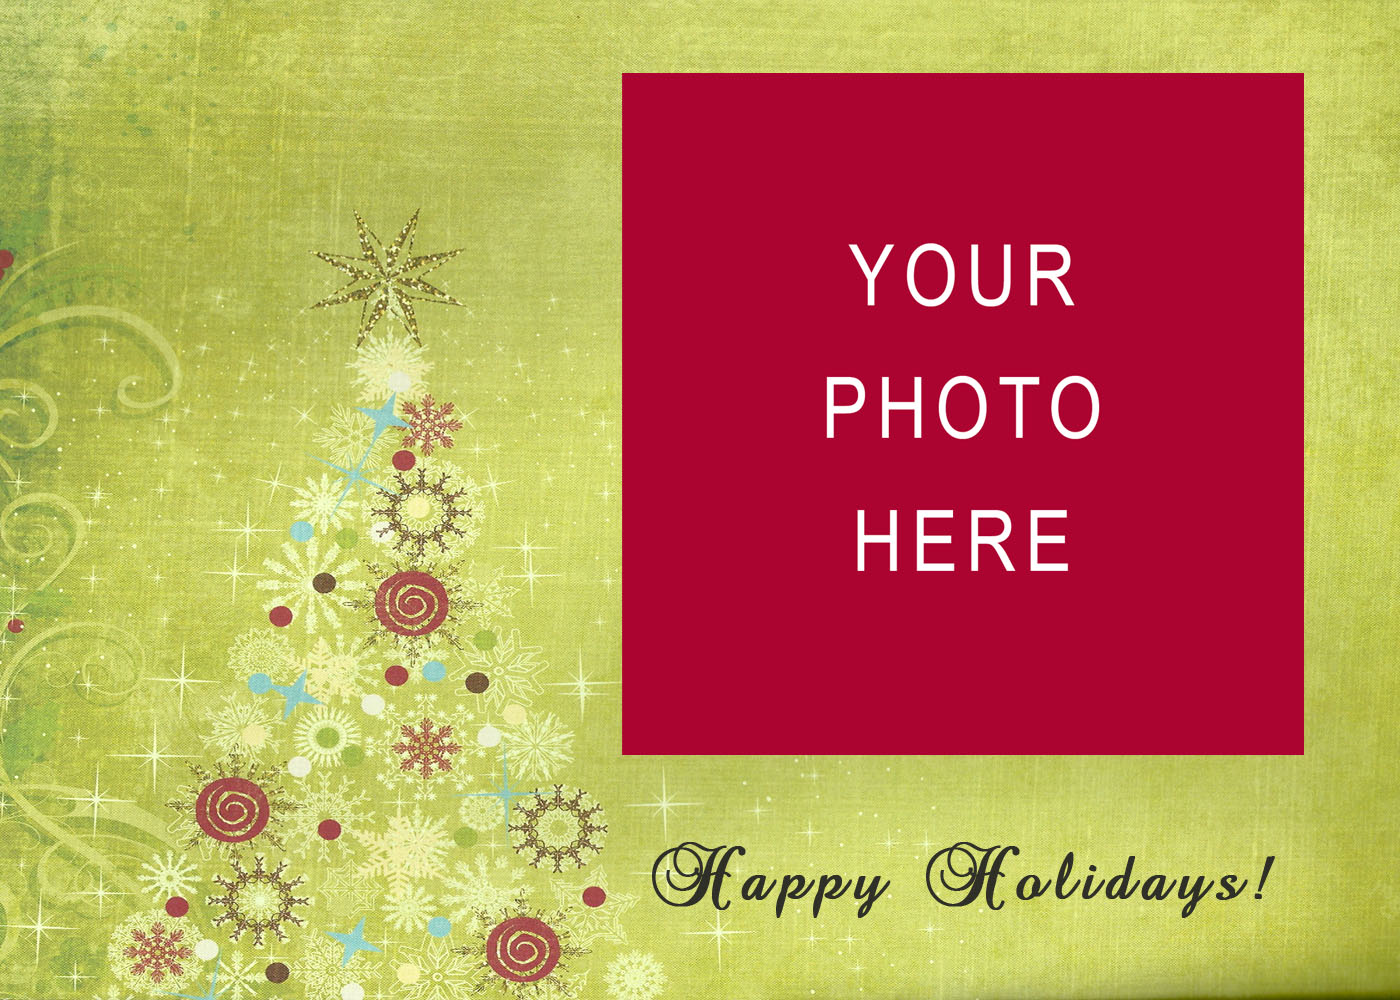 Christmas Card Templates Free - Christmas greeting card template